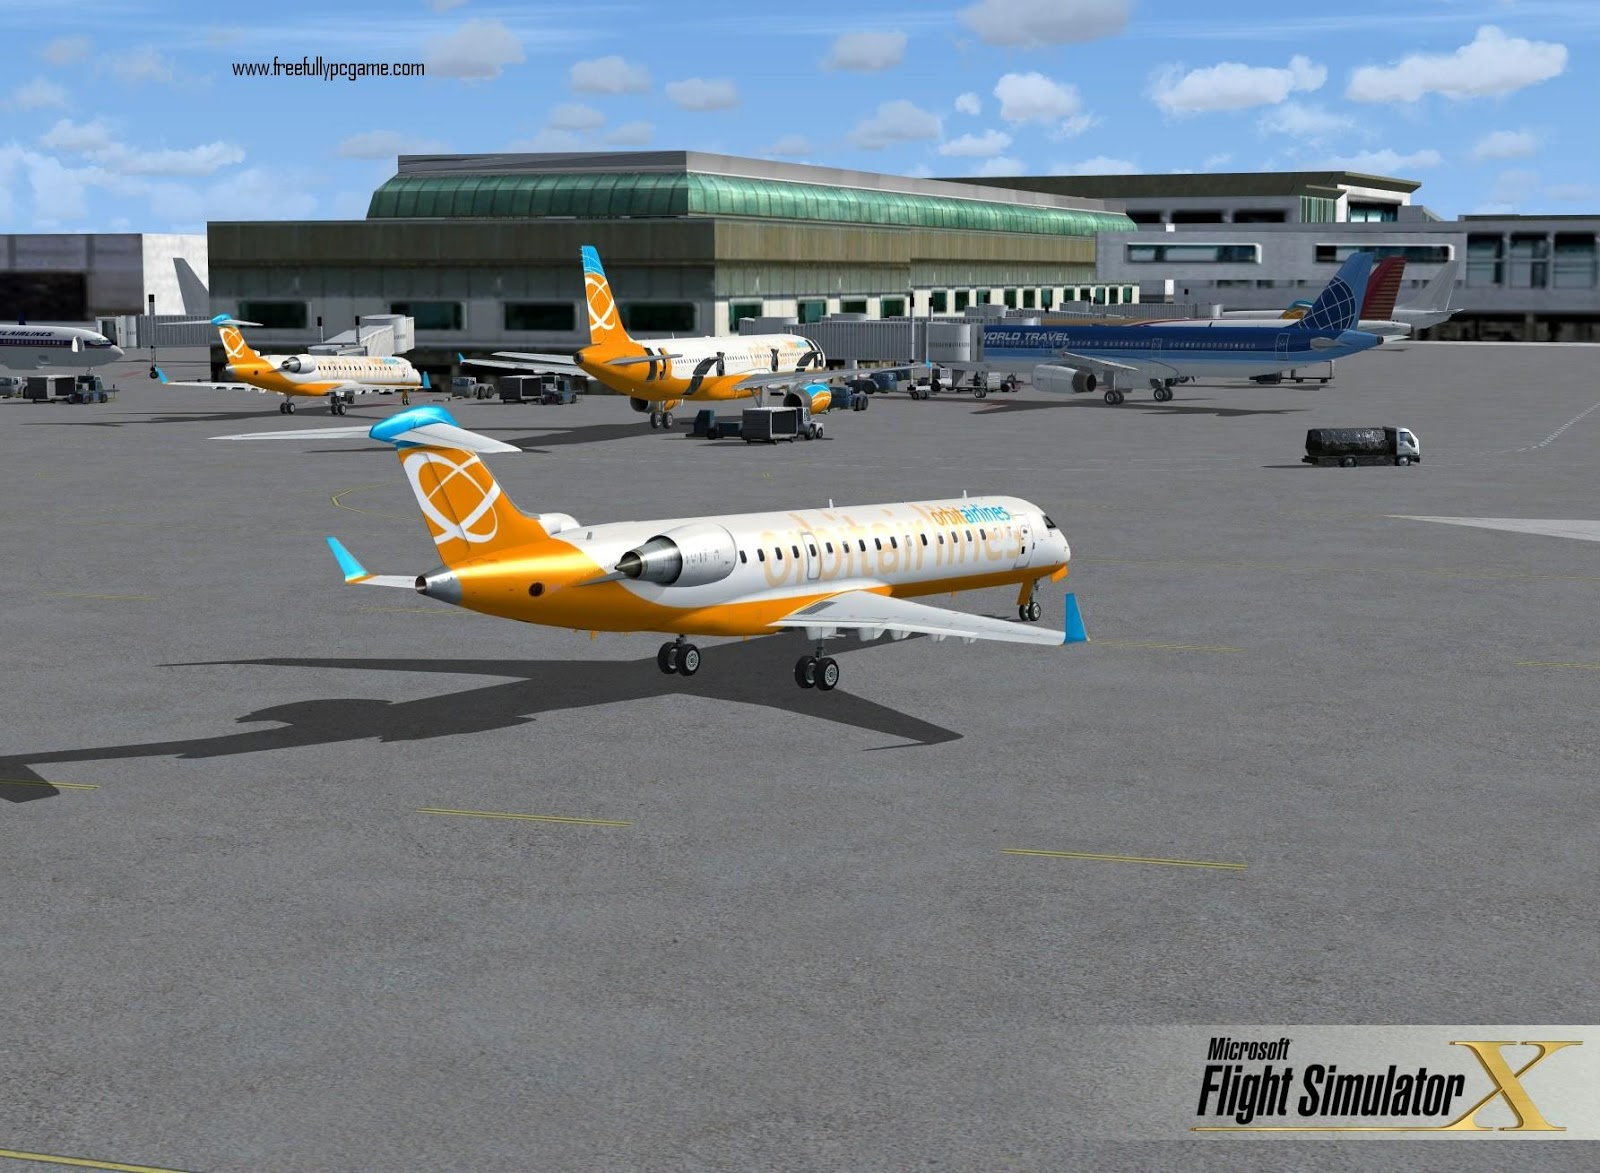 Flight simulator games for pc free